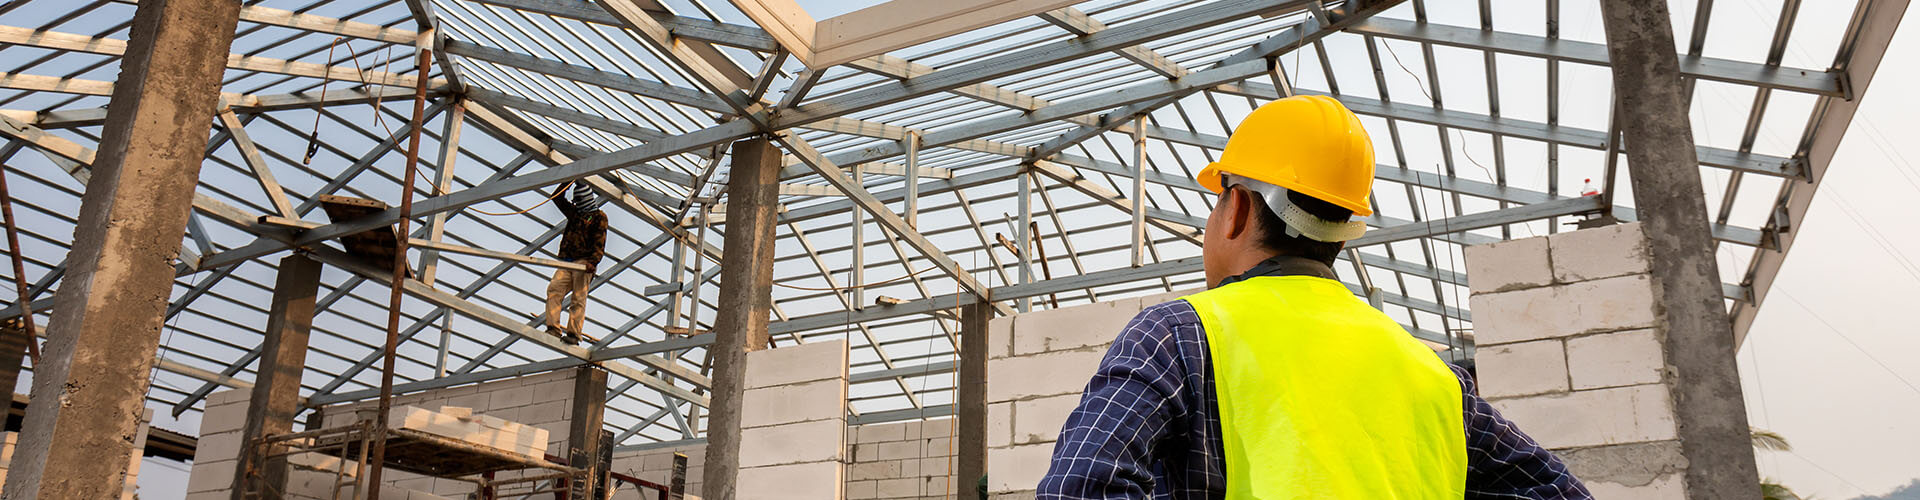 Commercial Construction Loans to Support Your Growth